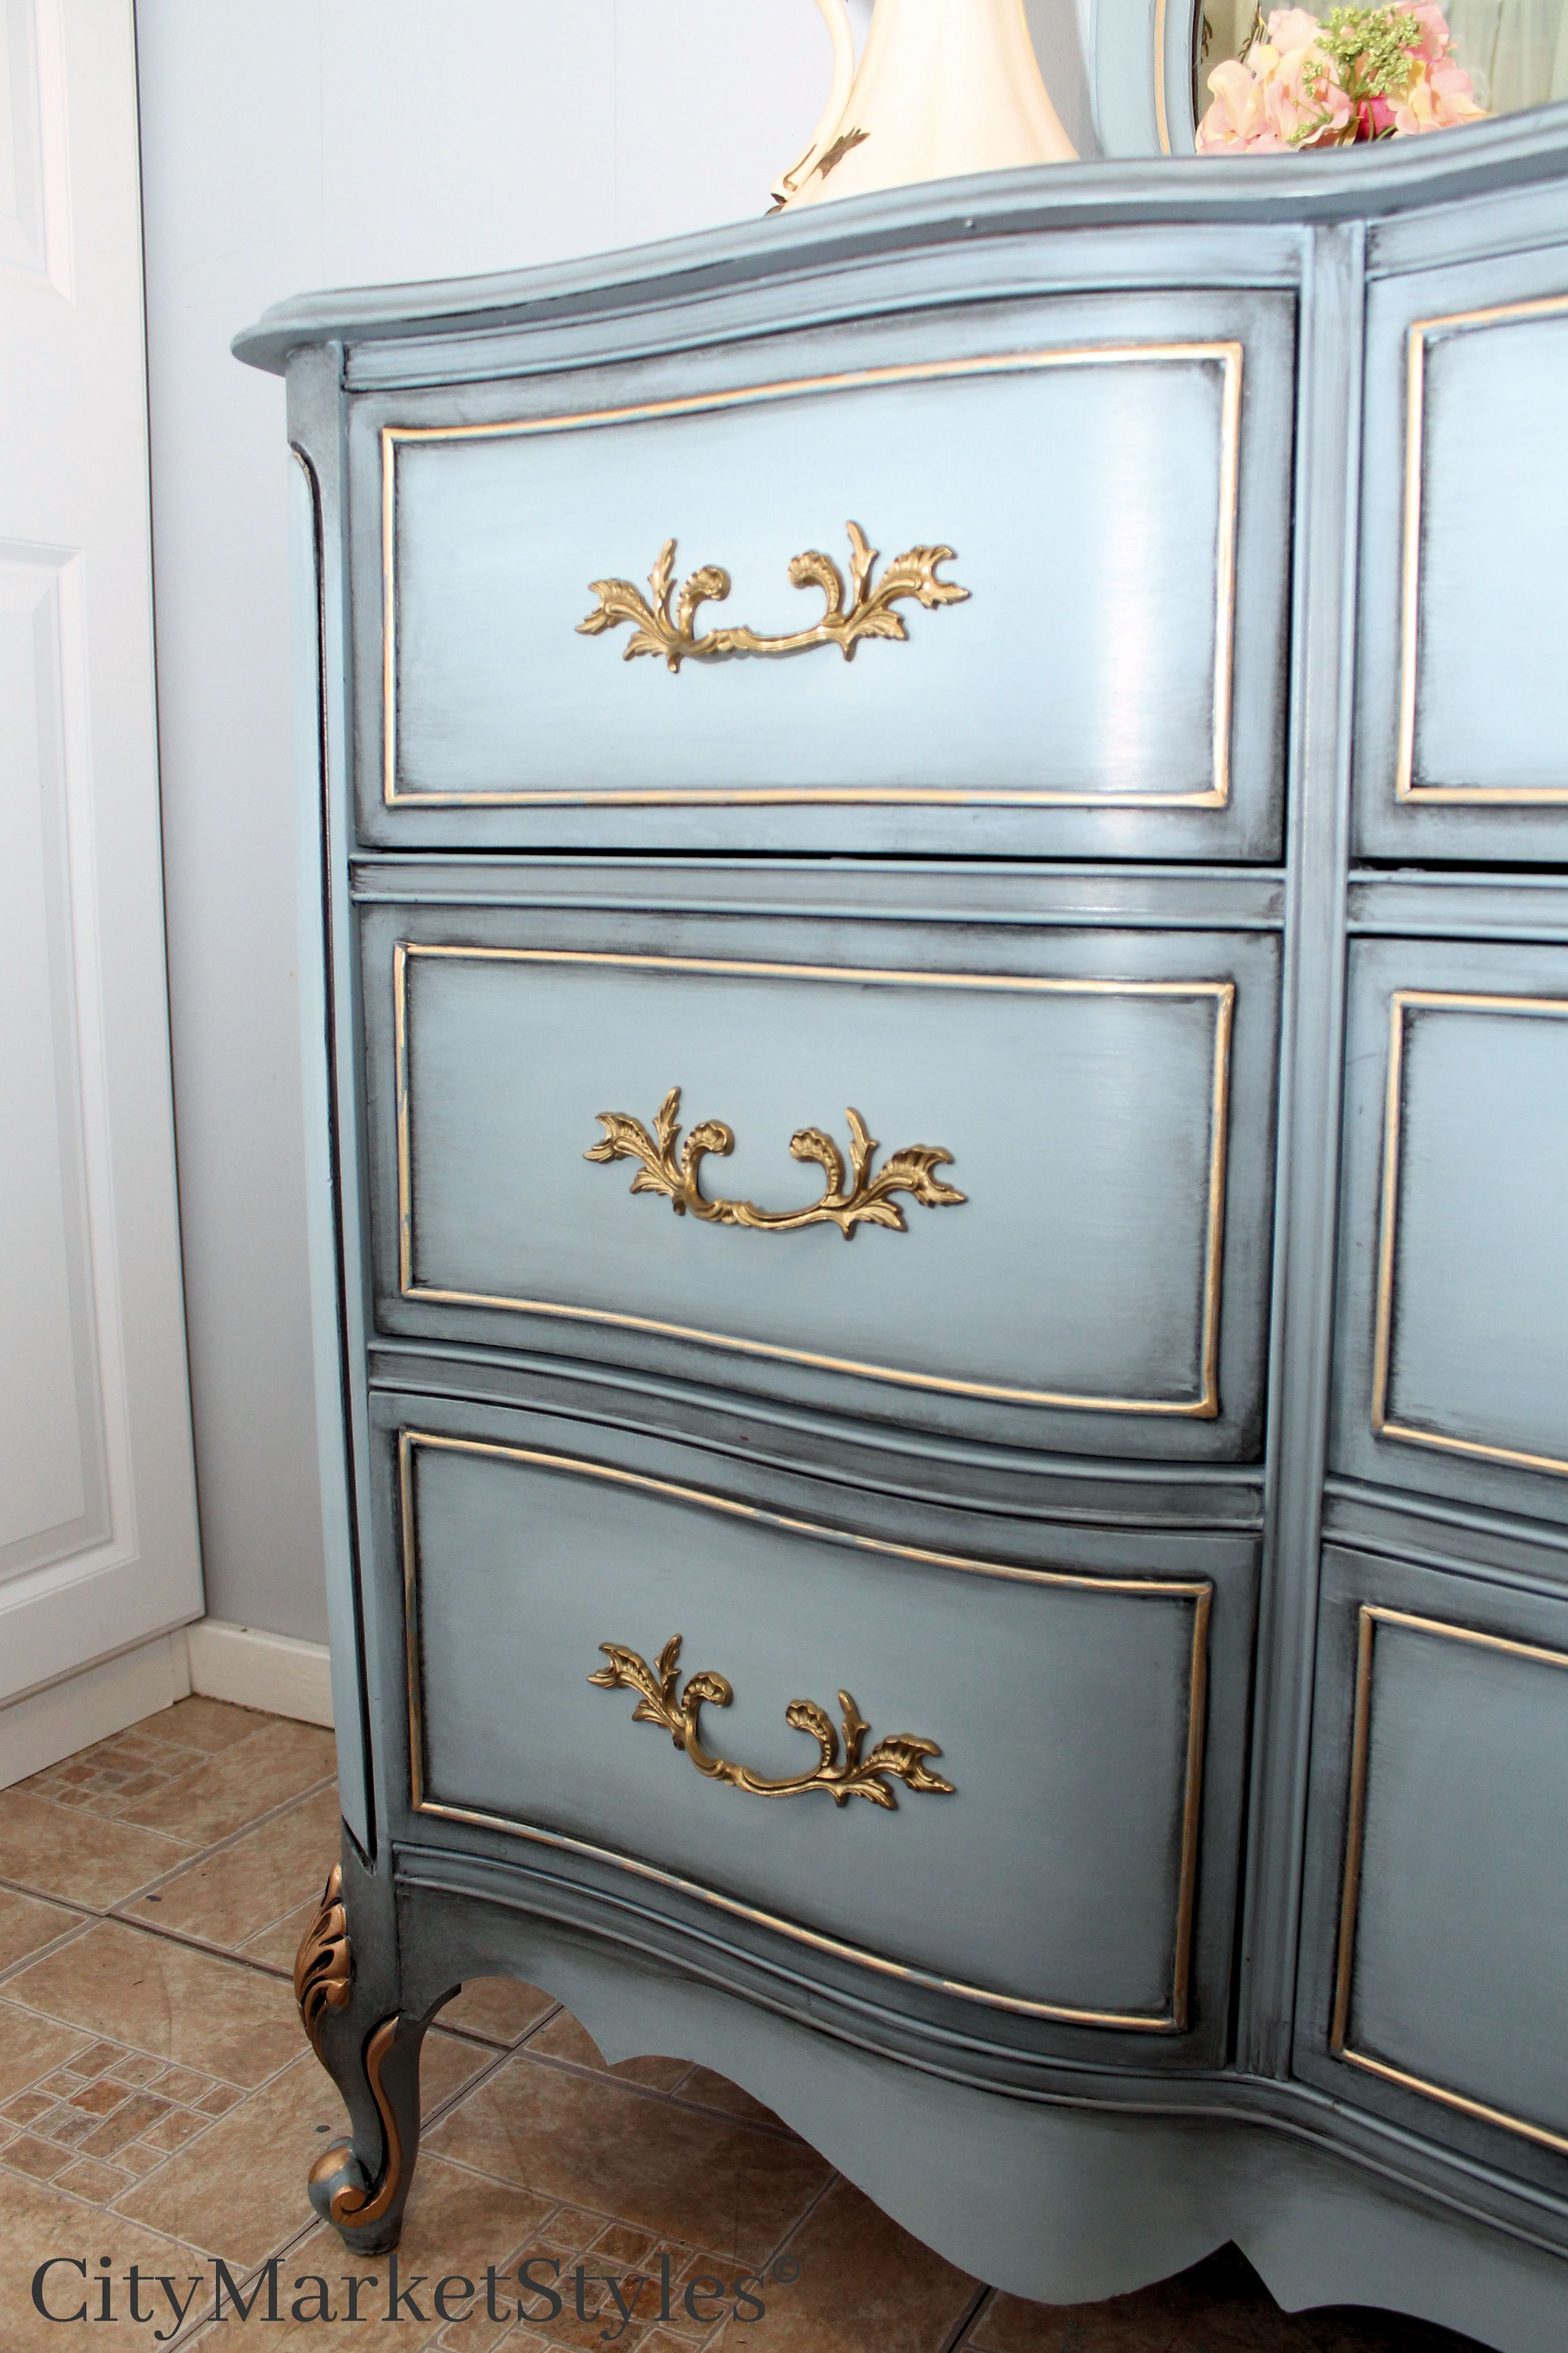 Painted French Provincial Dresser In Stormy Cove With Dark Glaze